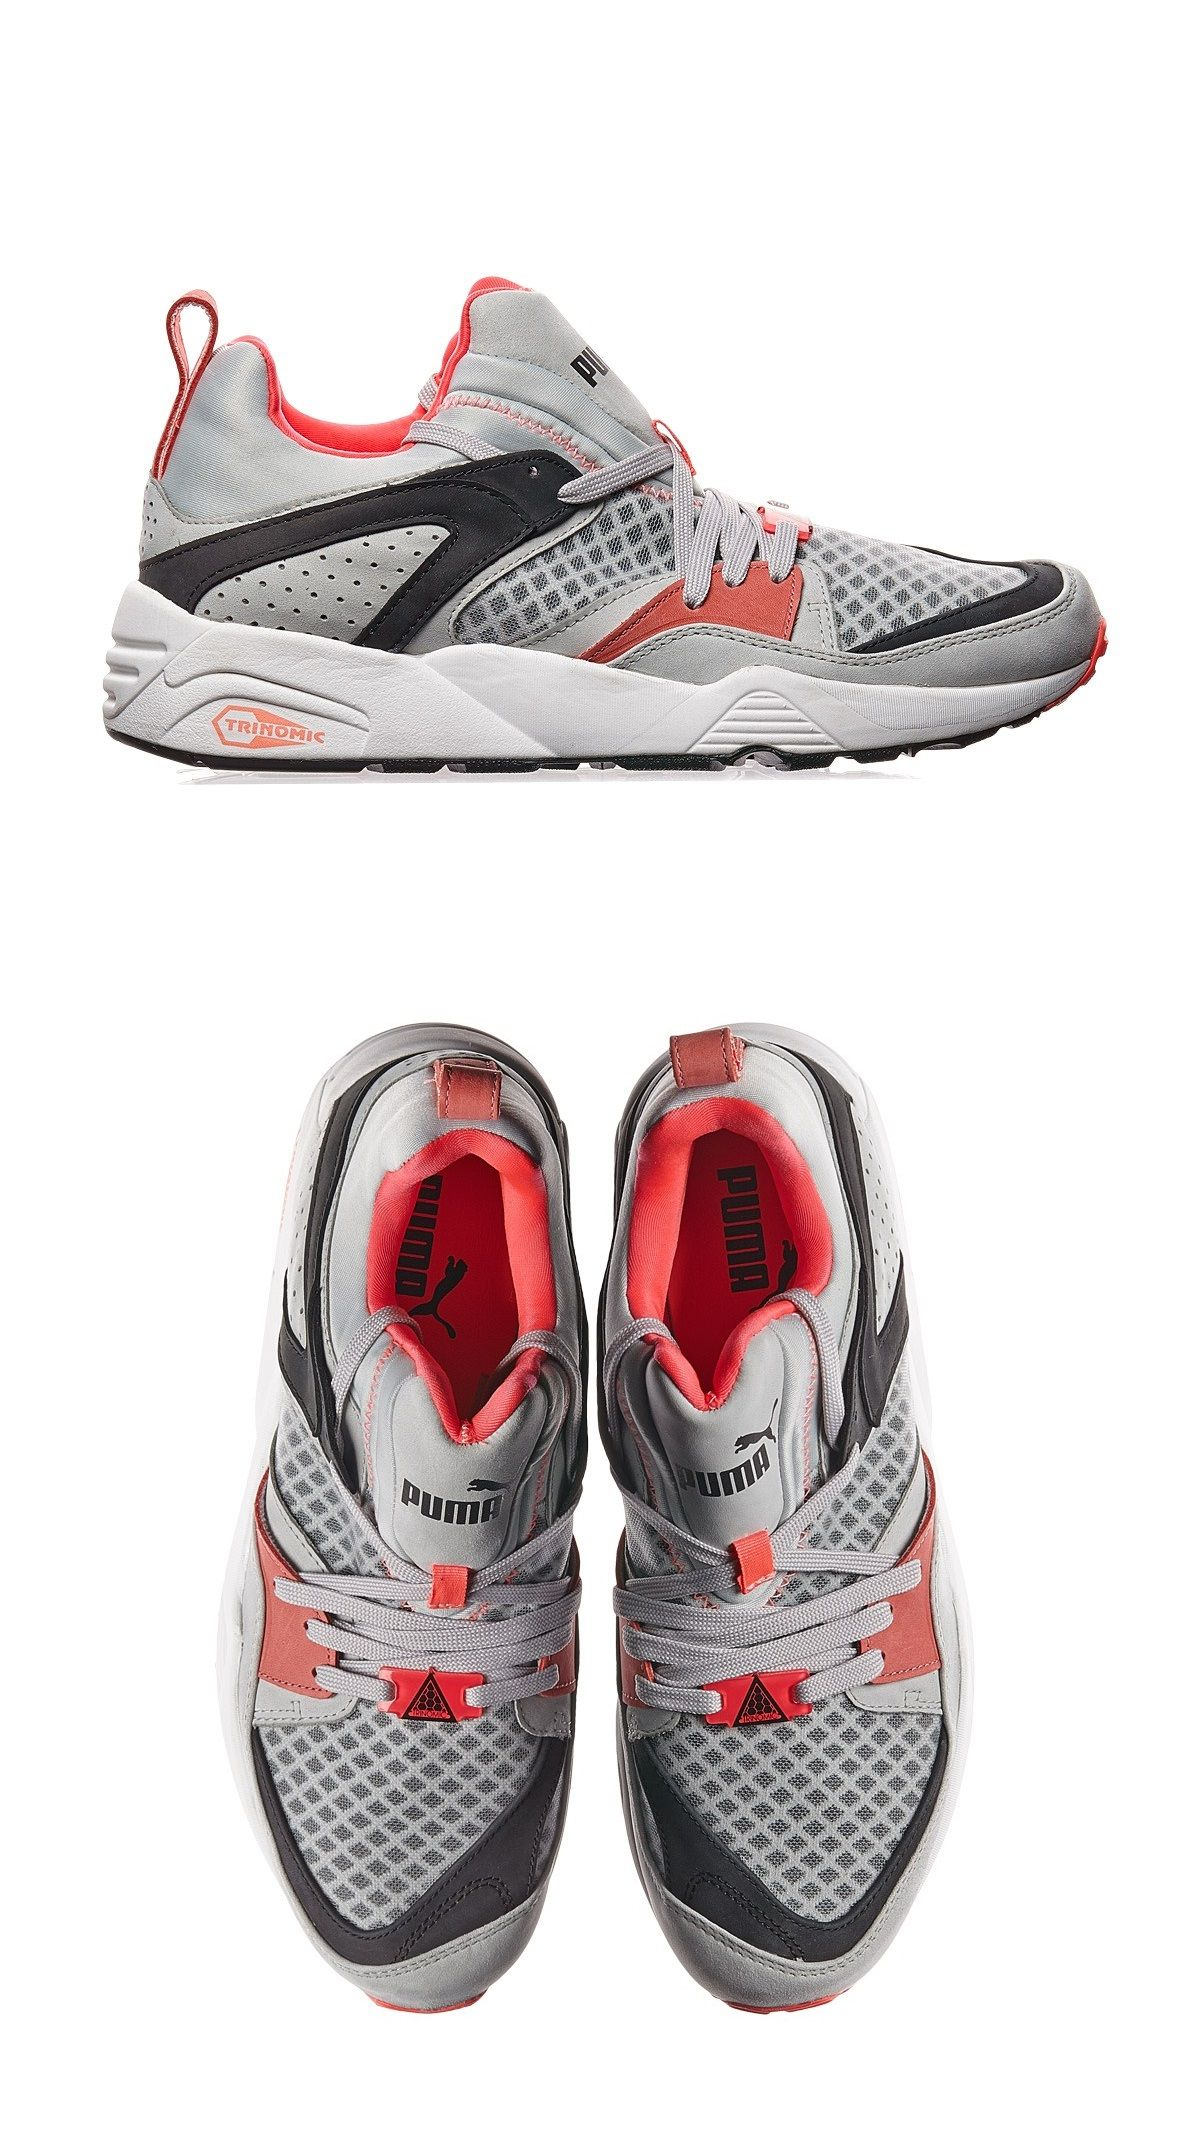 Adidas shoes outlet, Nike shoes cheap